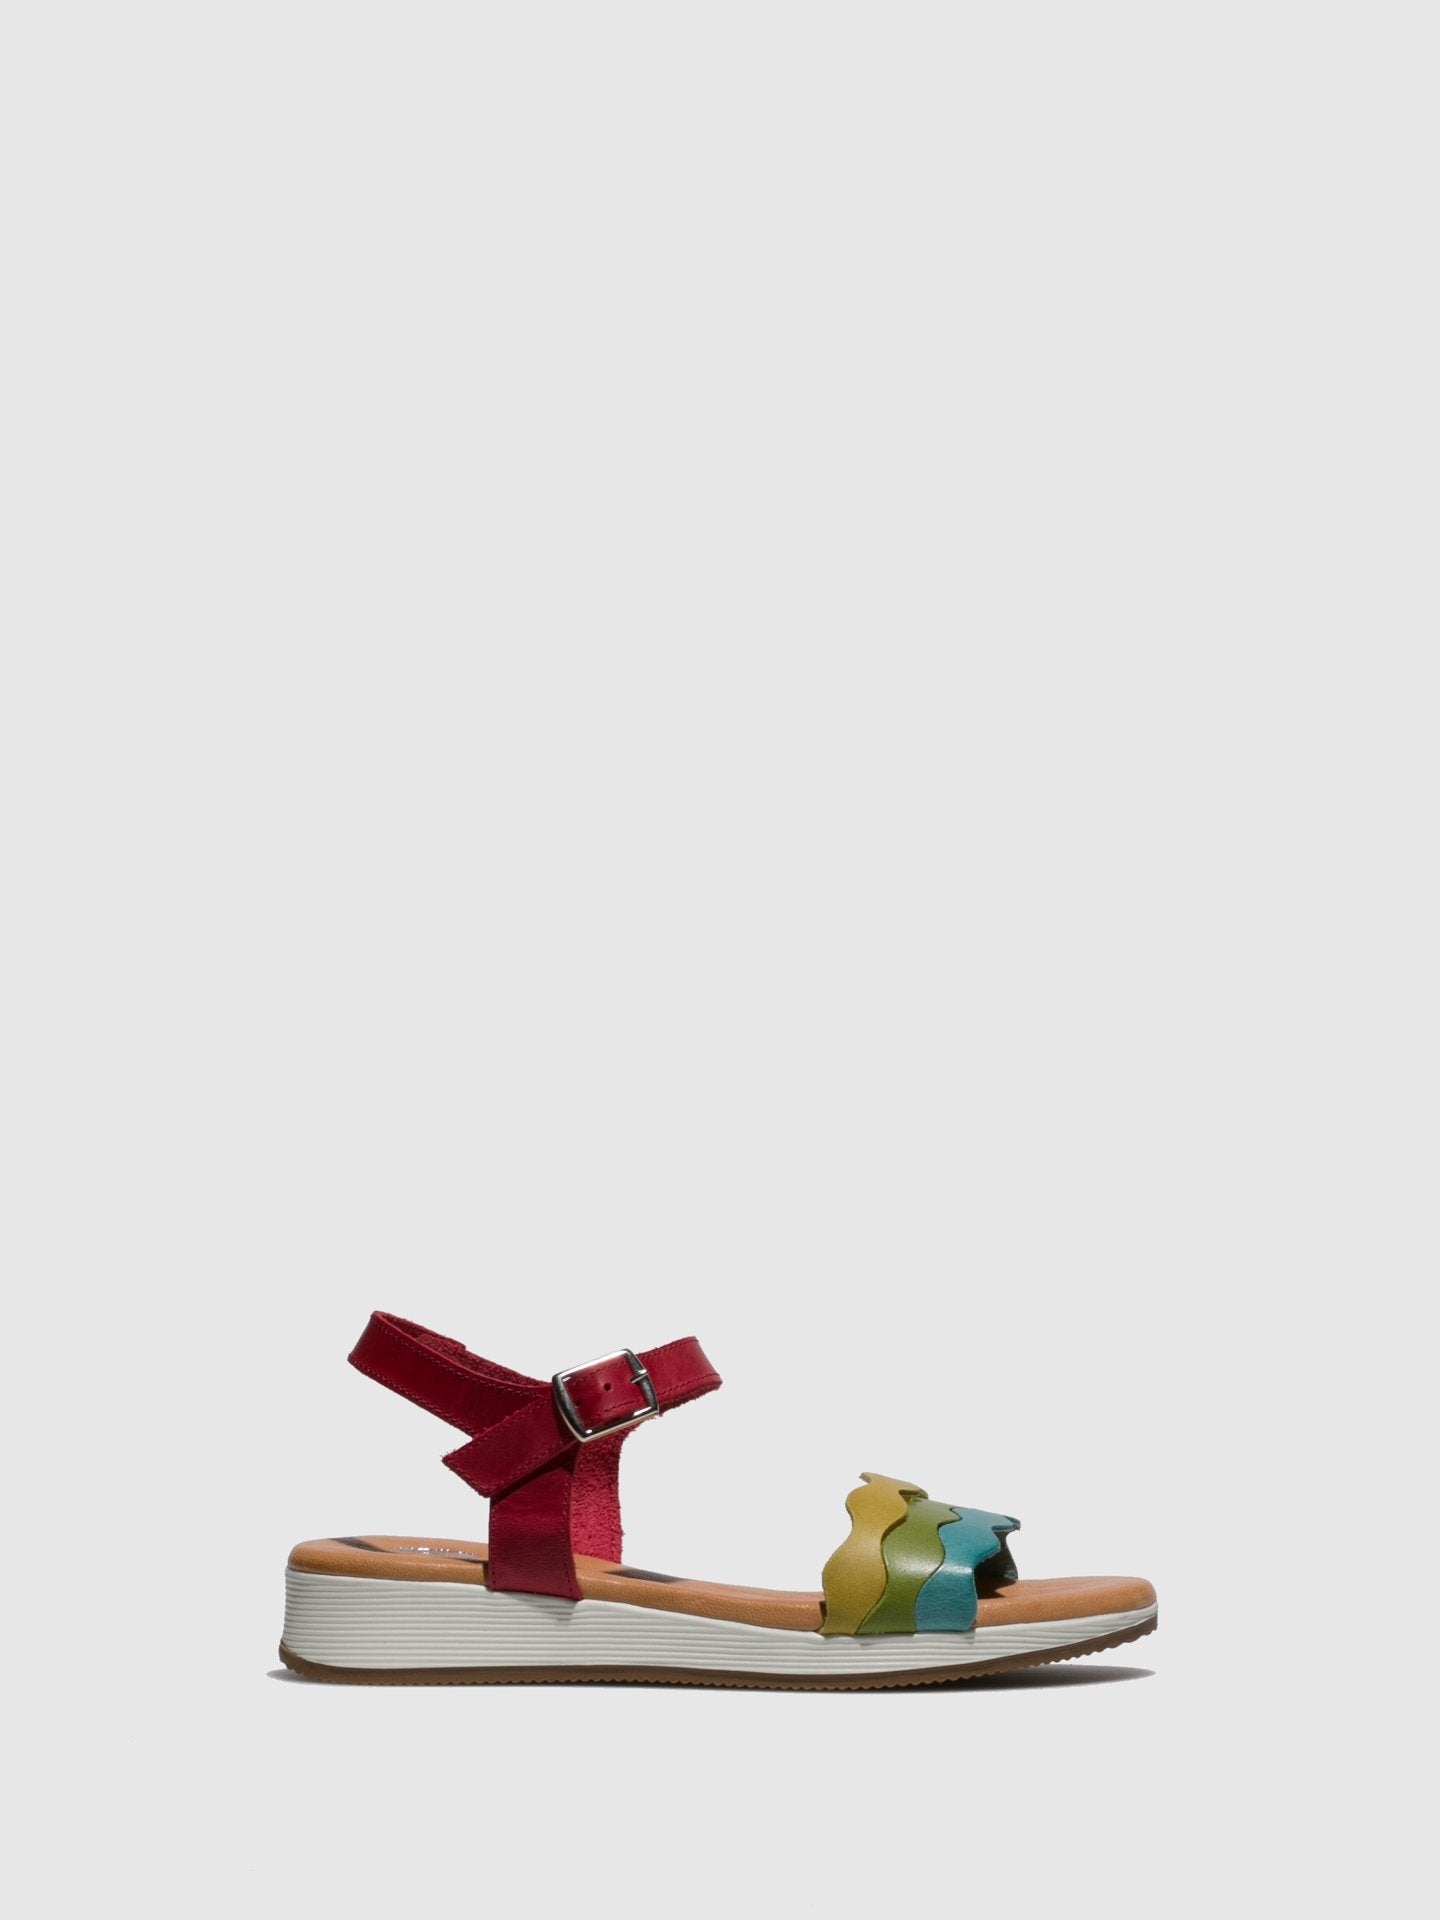 Marila Shoes Multicolor Buckle Sandals